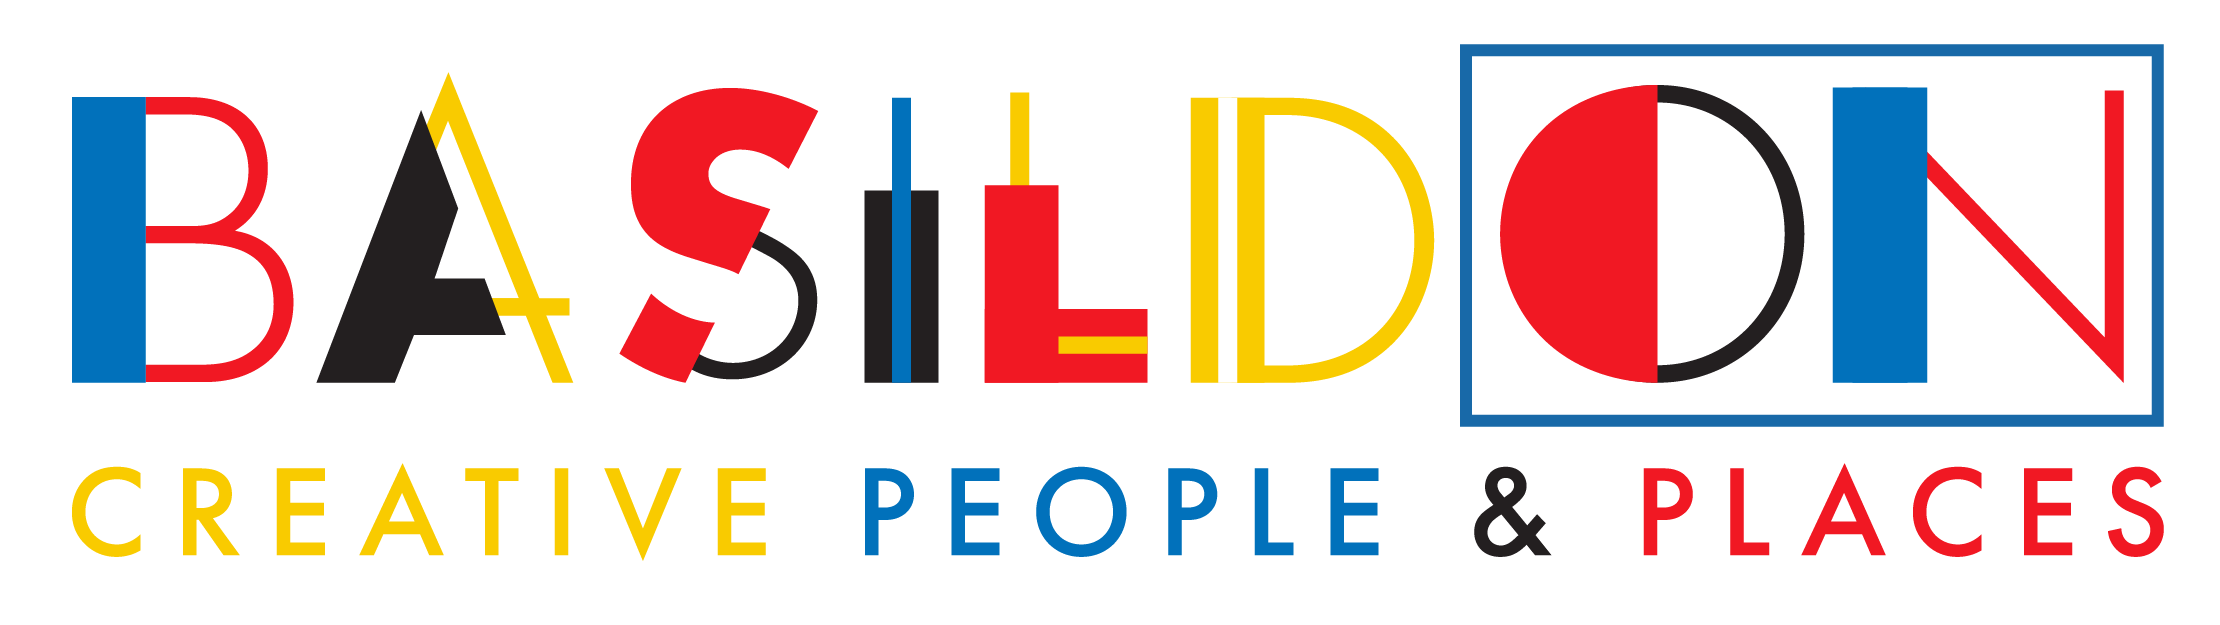 BasildON Creative People and Places logo